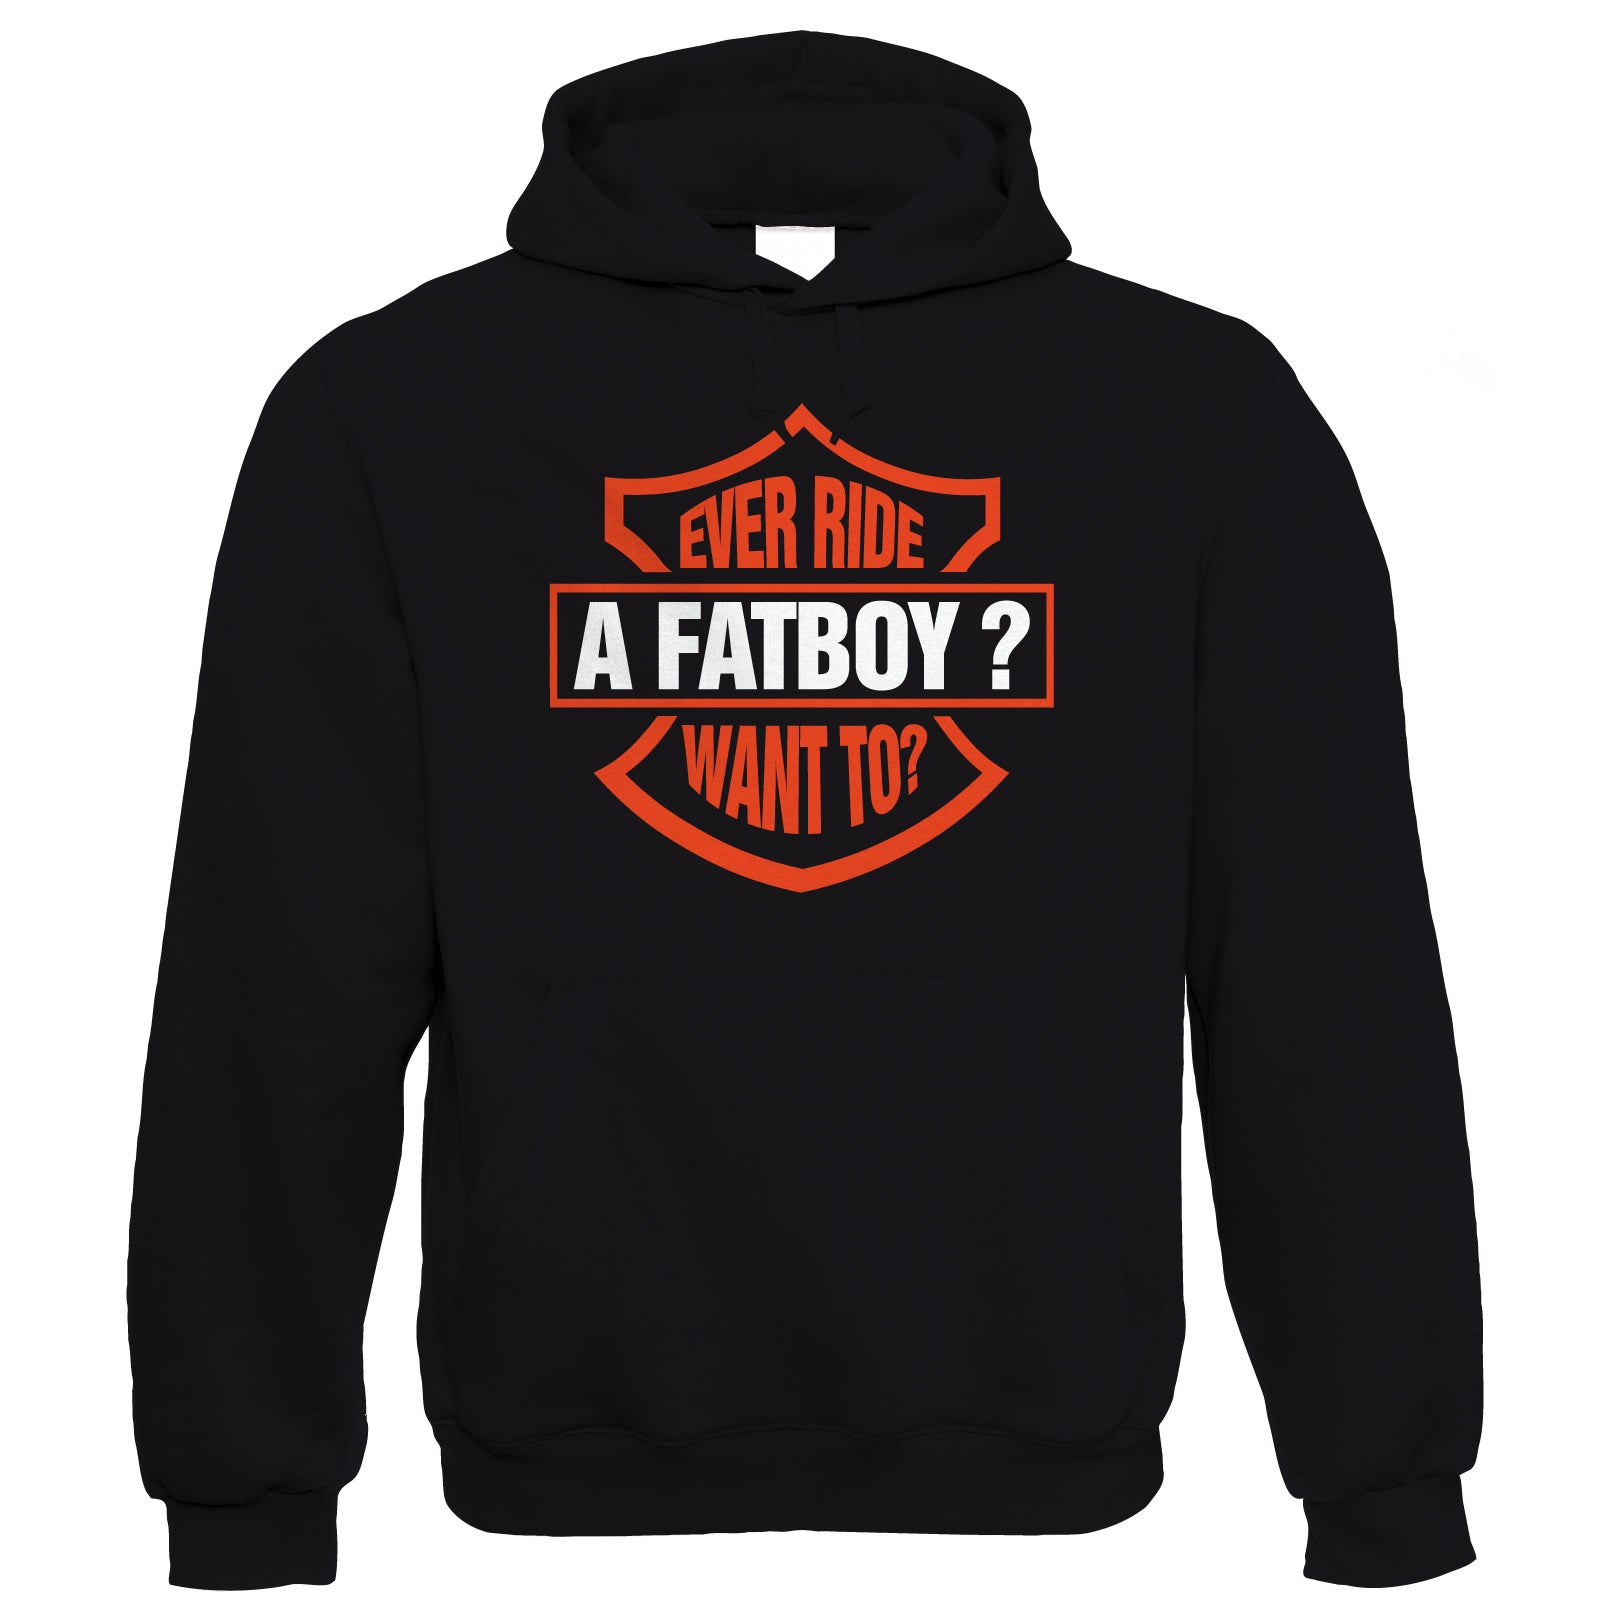 Ever Ride A Fatboy, Mens Funny Biker Hoodie | Motorbike Racing Racer Enthusiast Motorcycle Club Chopper Cafe Racer Superbike Gentleman Biker | Cool Birthday Christmas Gift Present Him Dad Husband Son